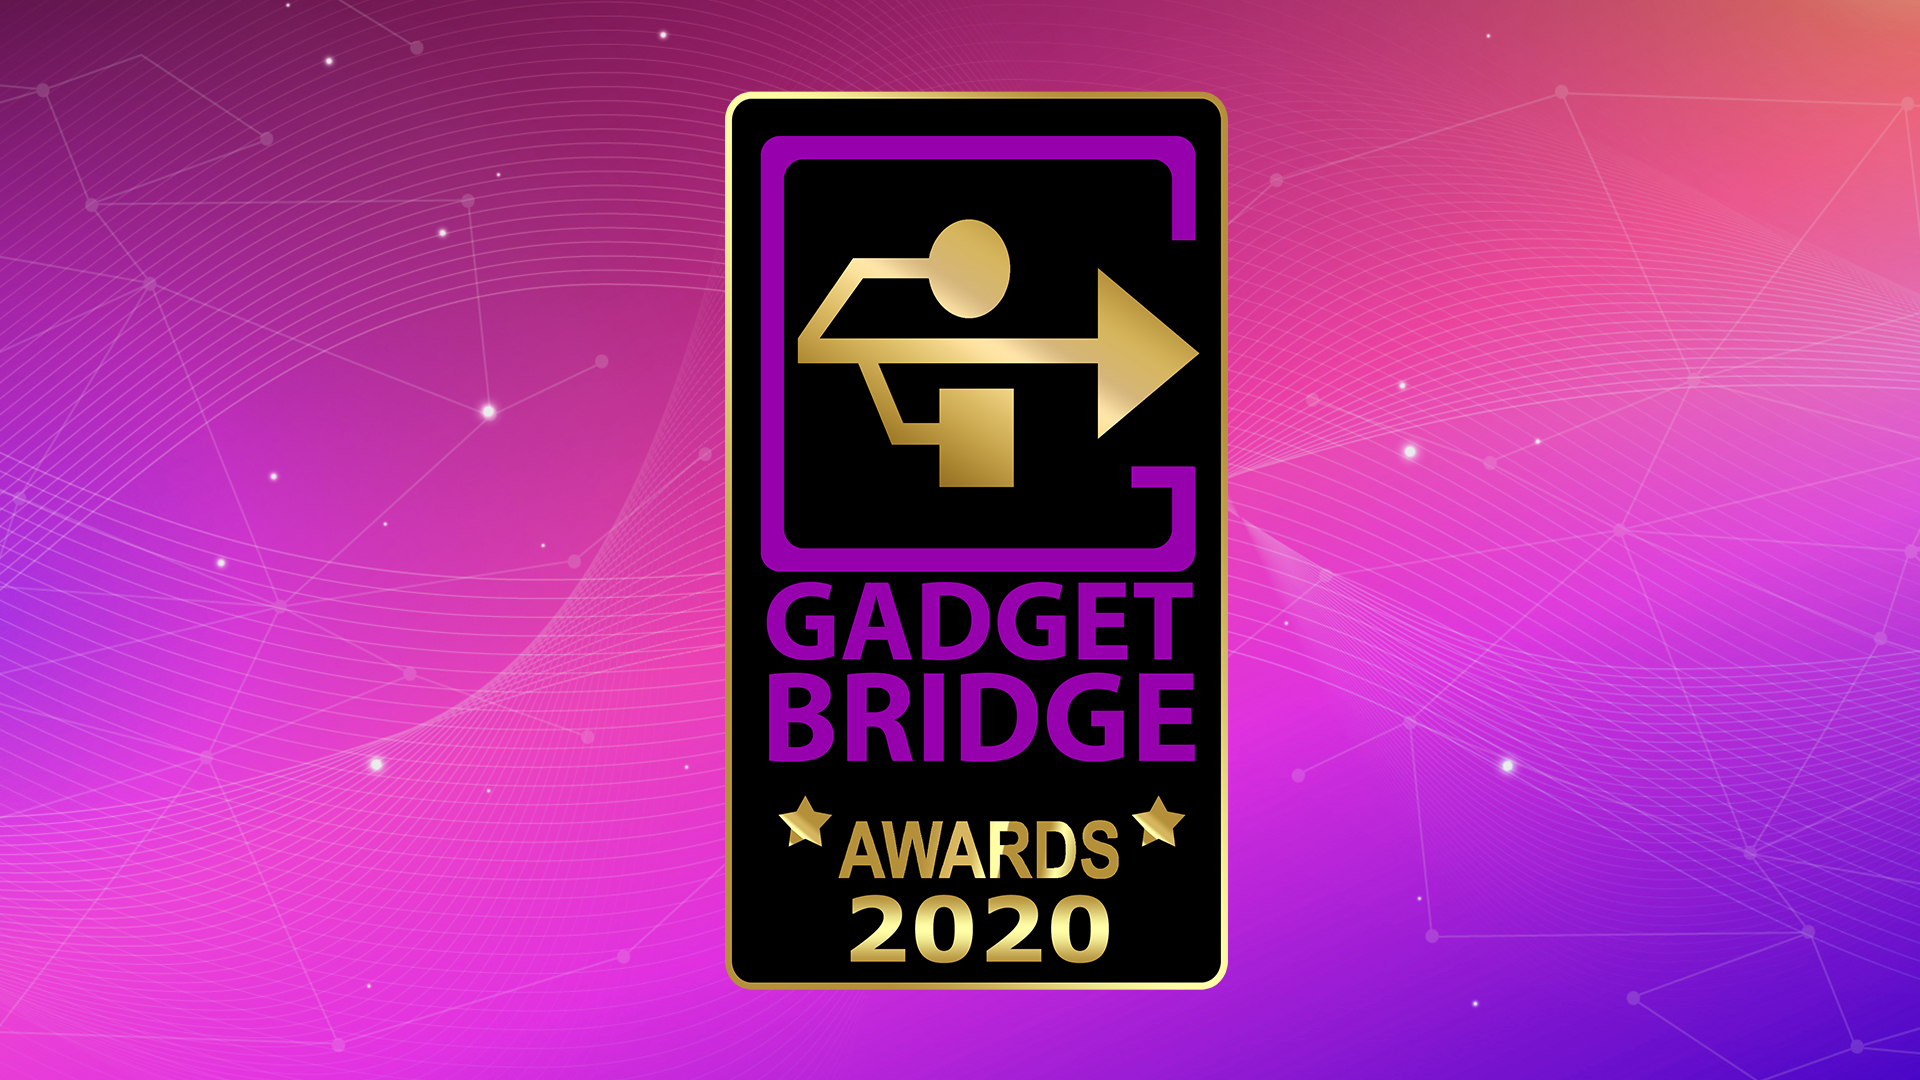 Gadget Bridge Awards 2020 - Nominations